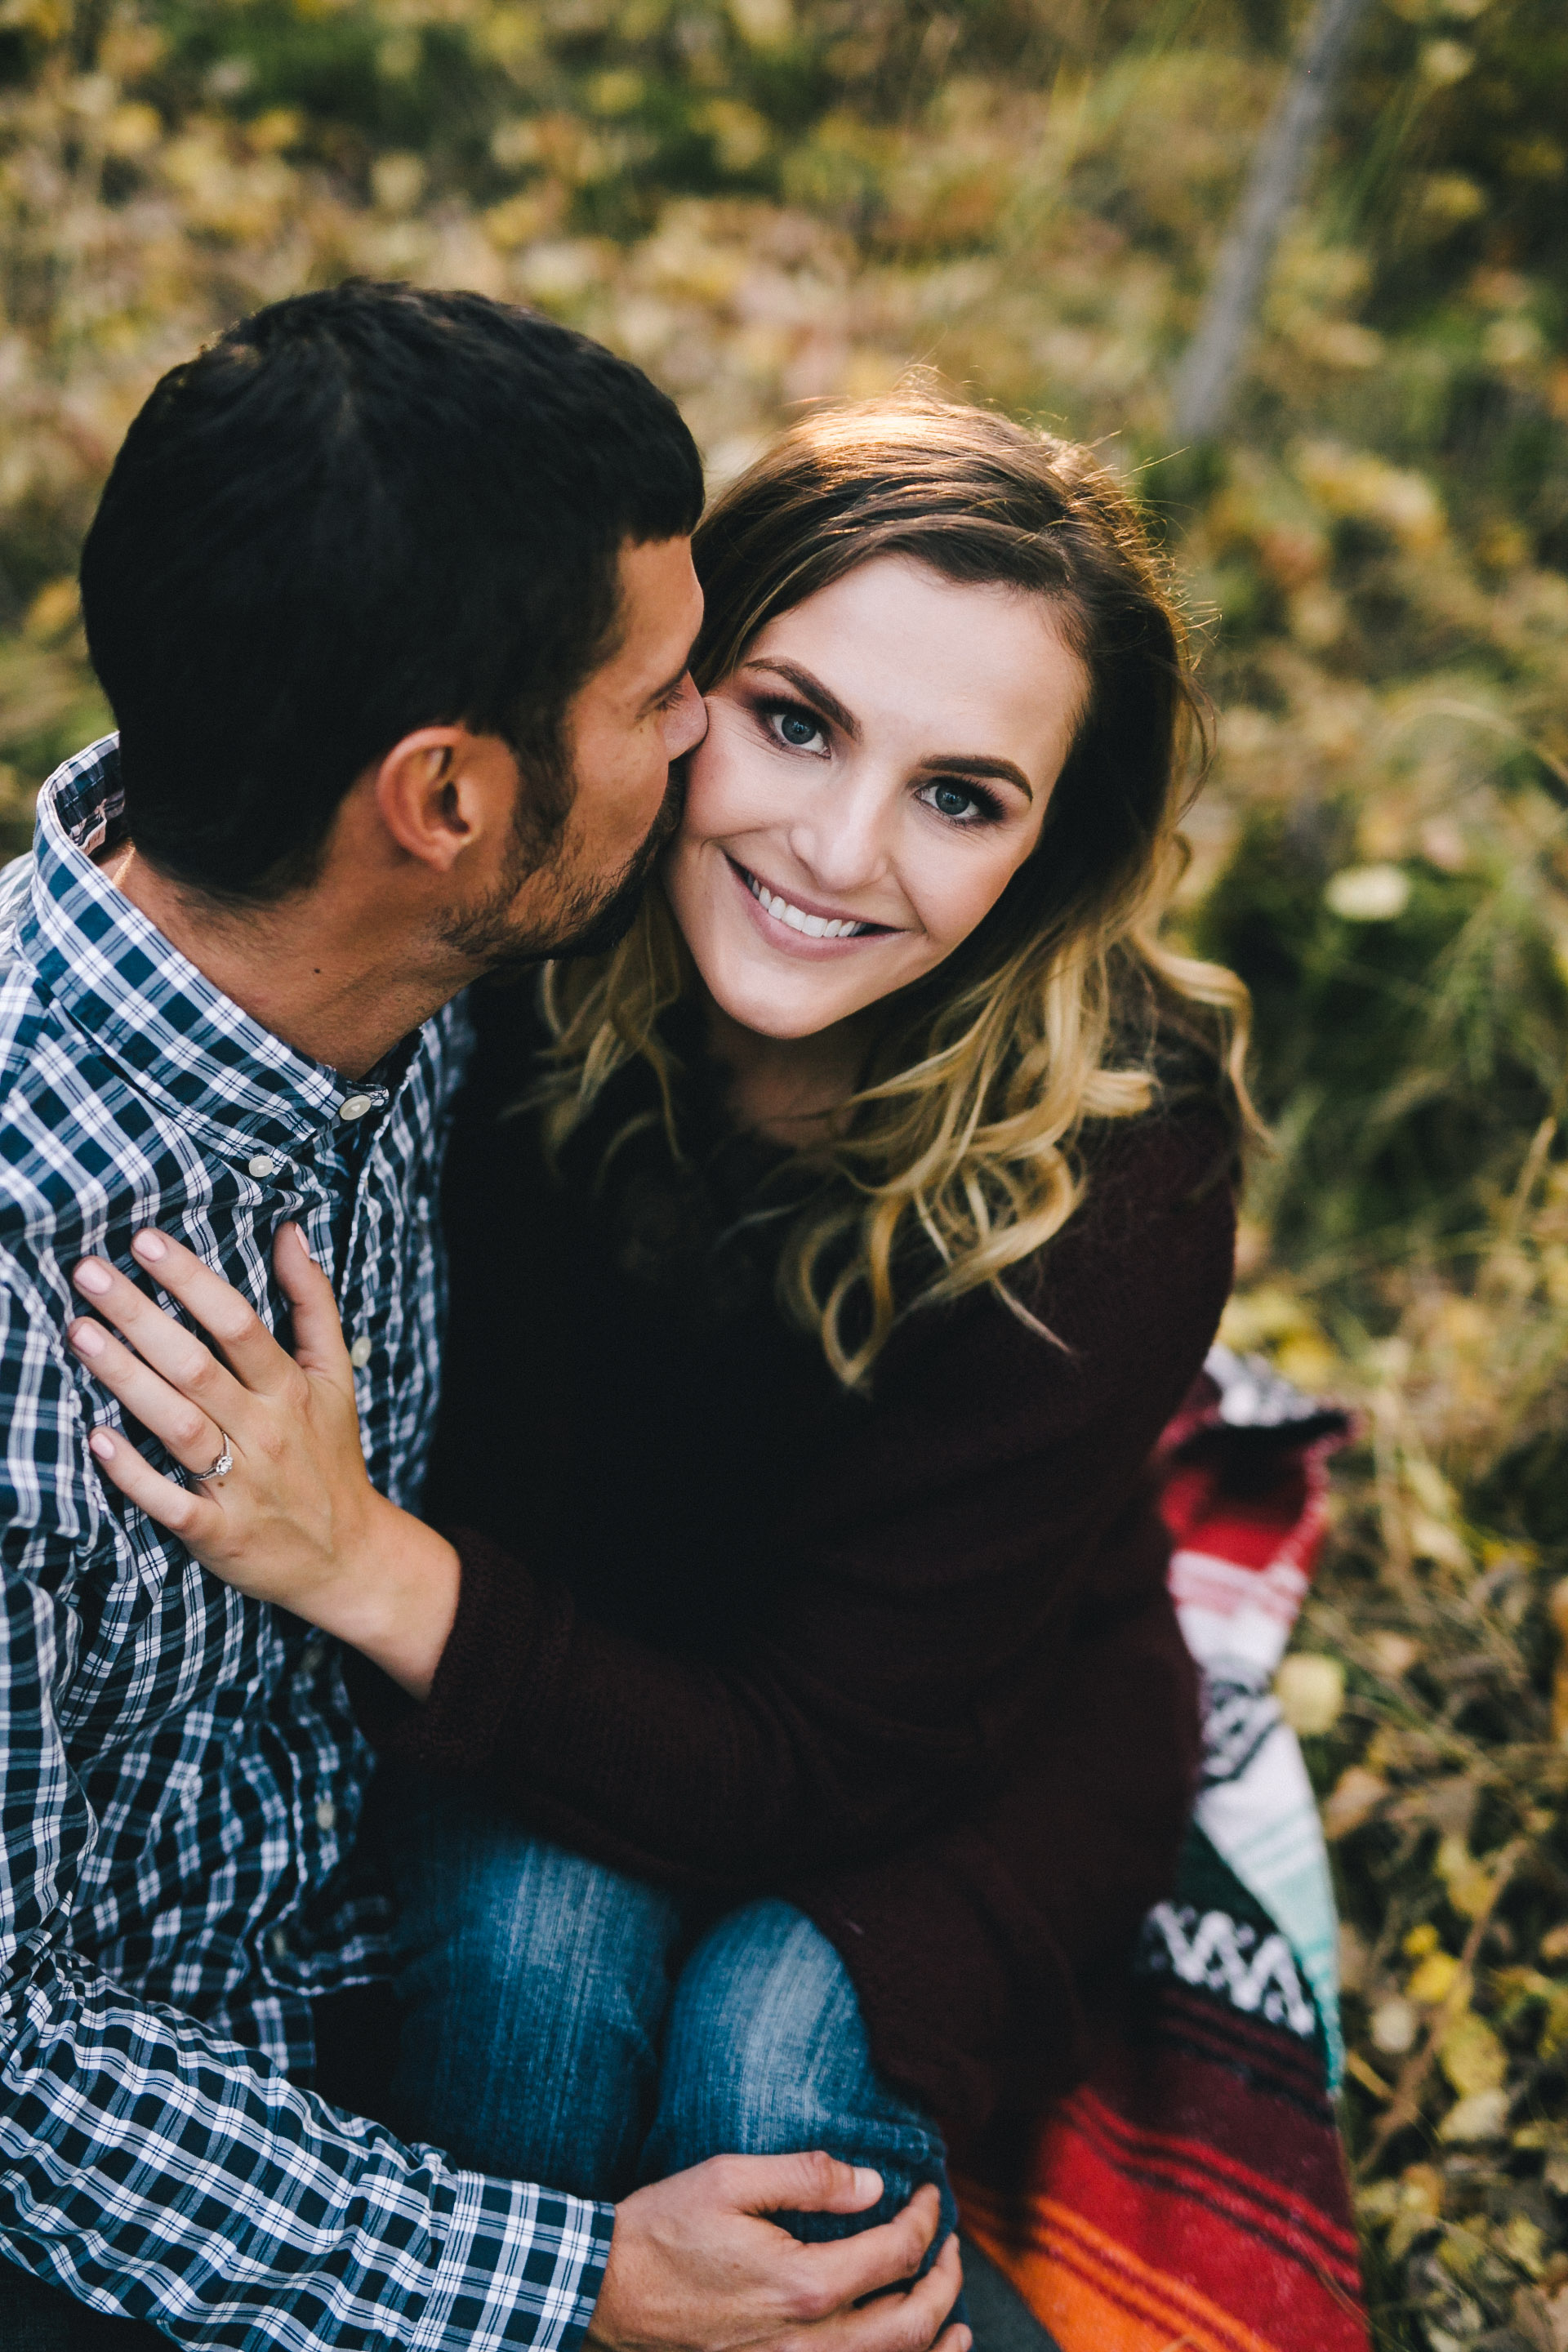 CourtneyDarrenEngagement-11.jpg